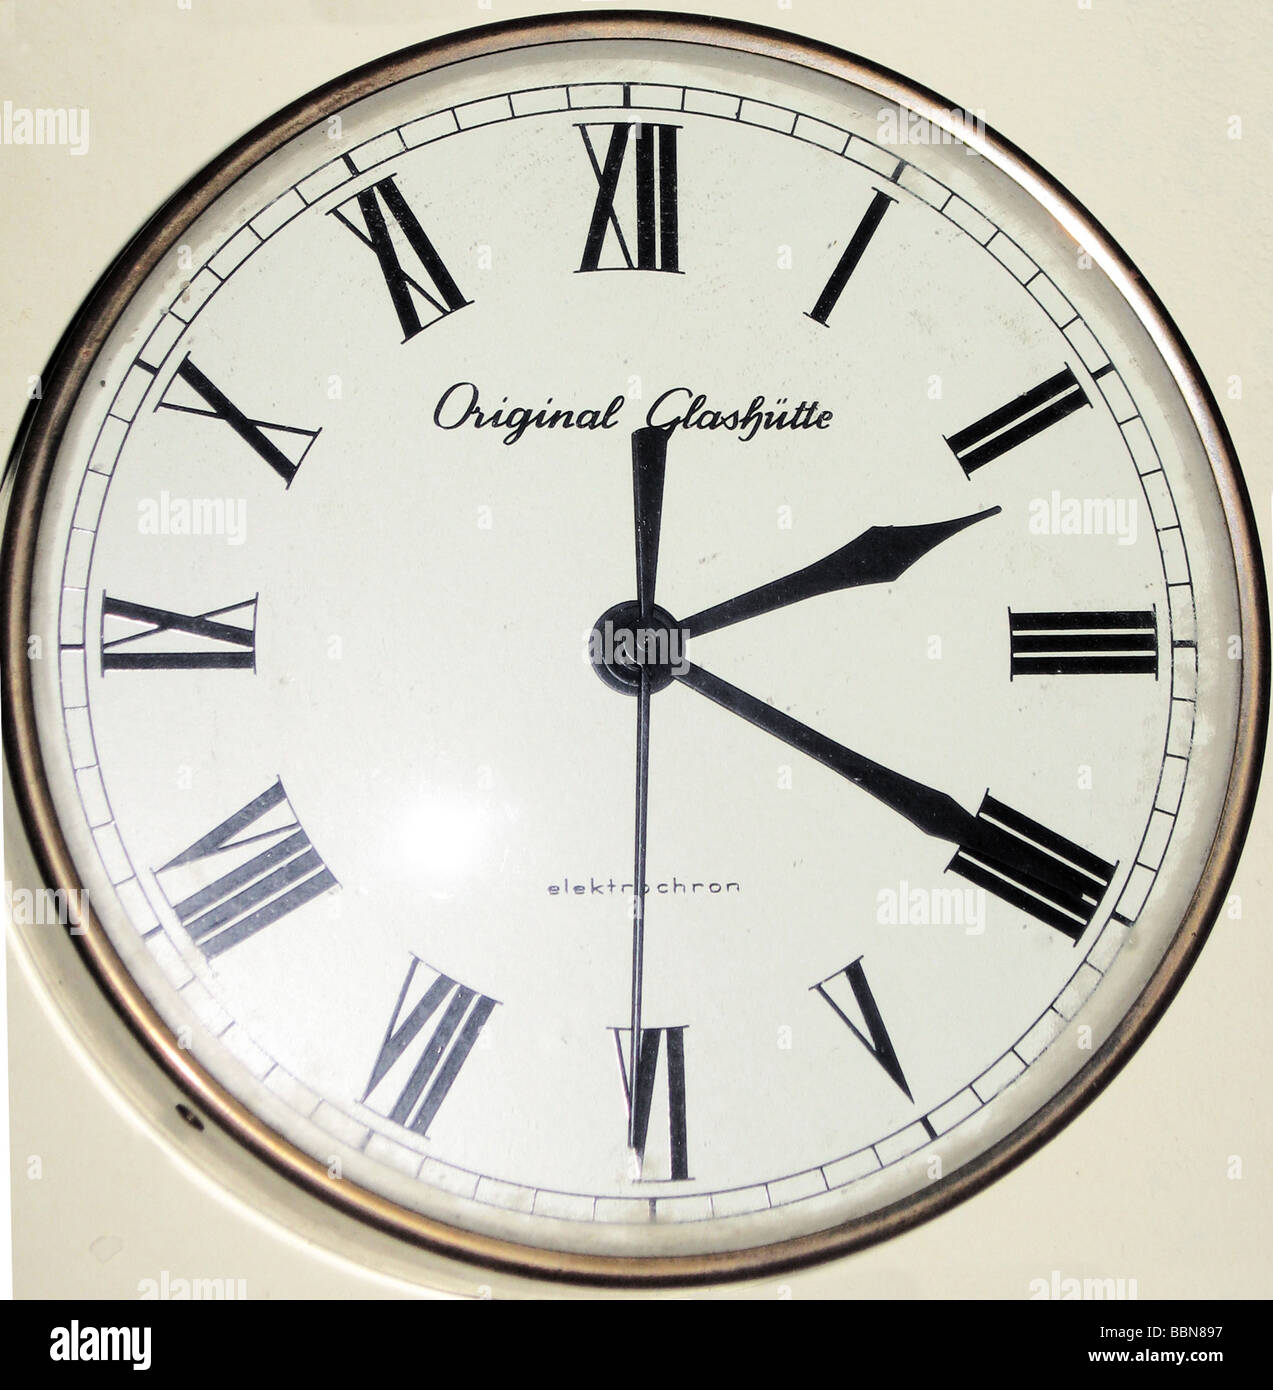 Electric Wall Clock Glashtte Elektrochron Stock Photos Electric